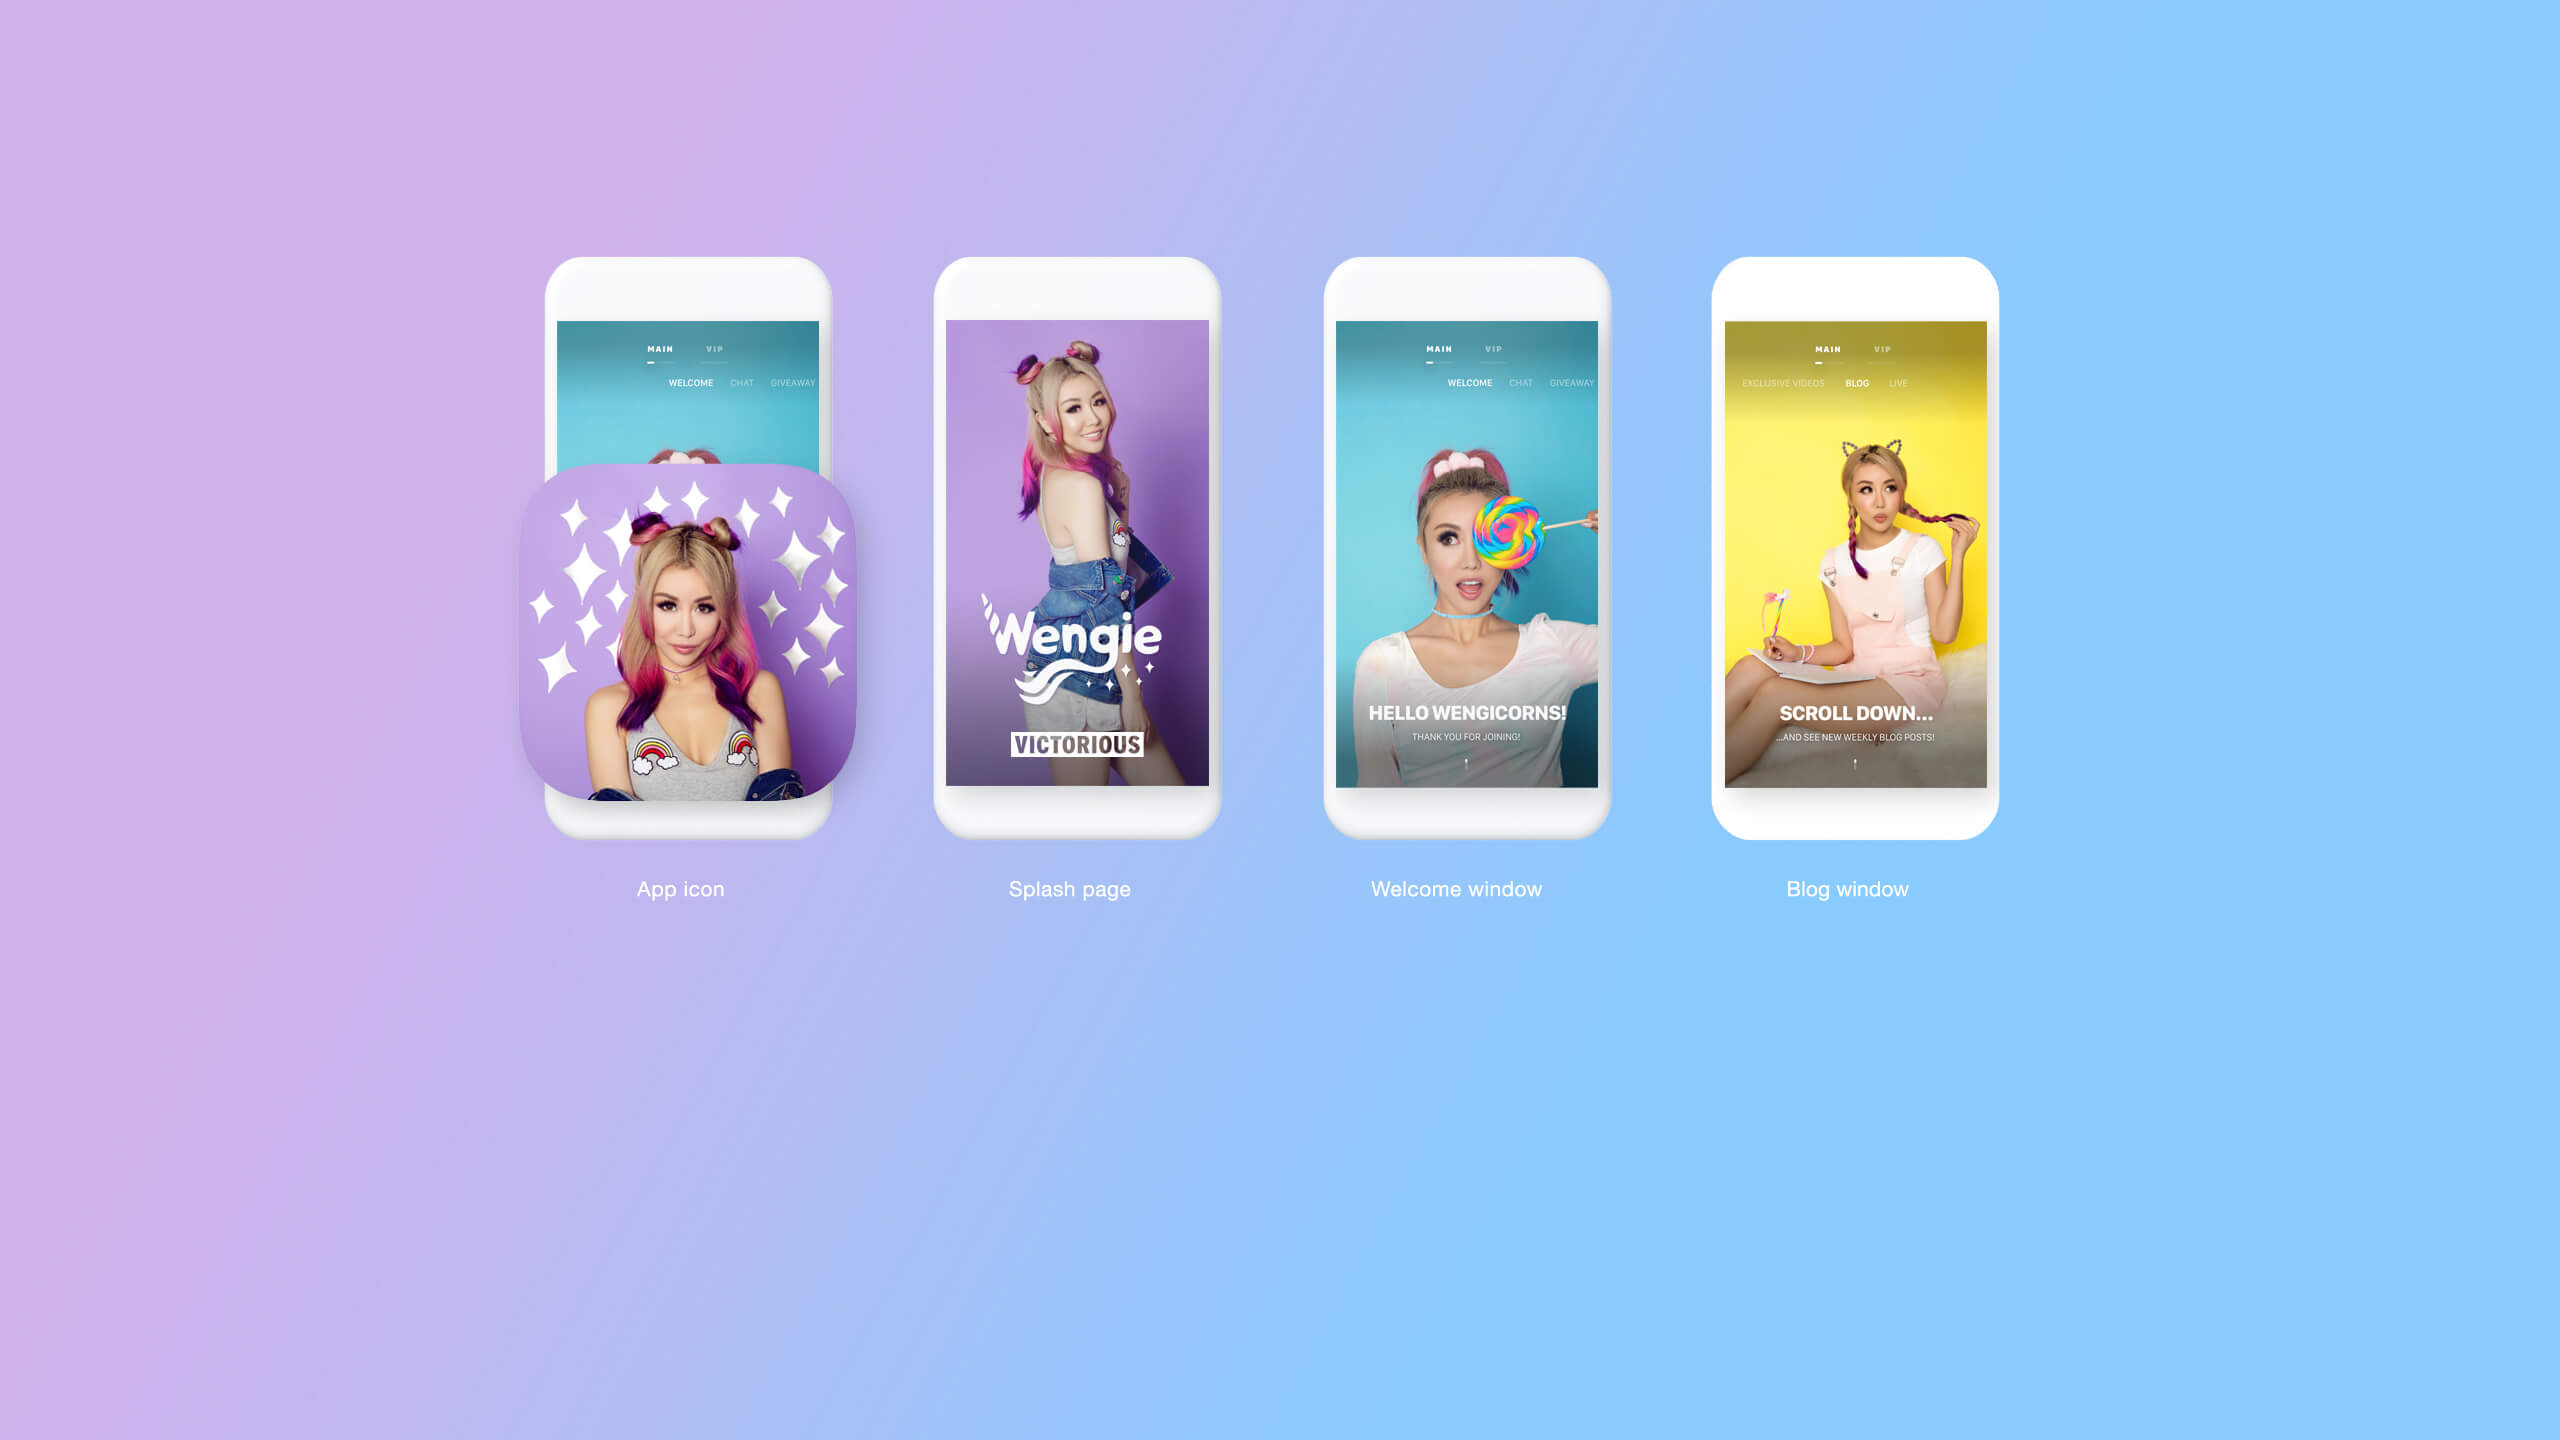 Wengie-Apps-03-Victorious-Semplice-2560-1440